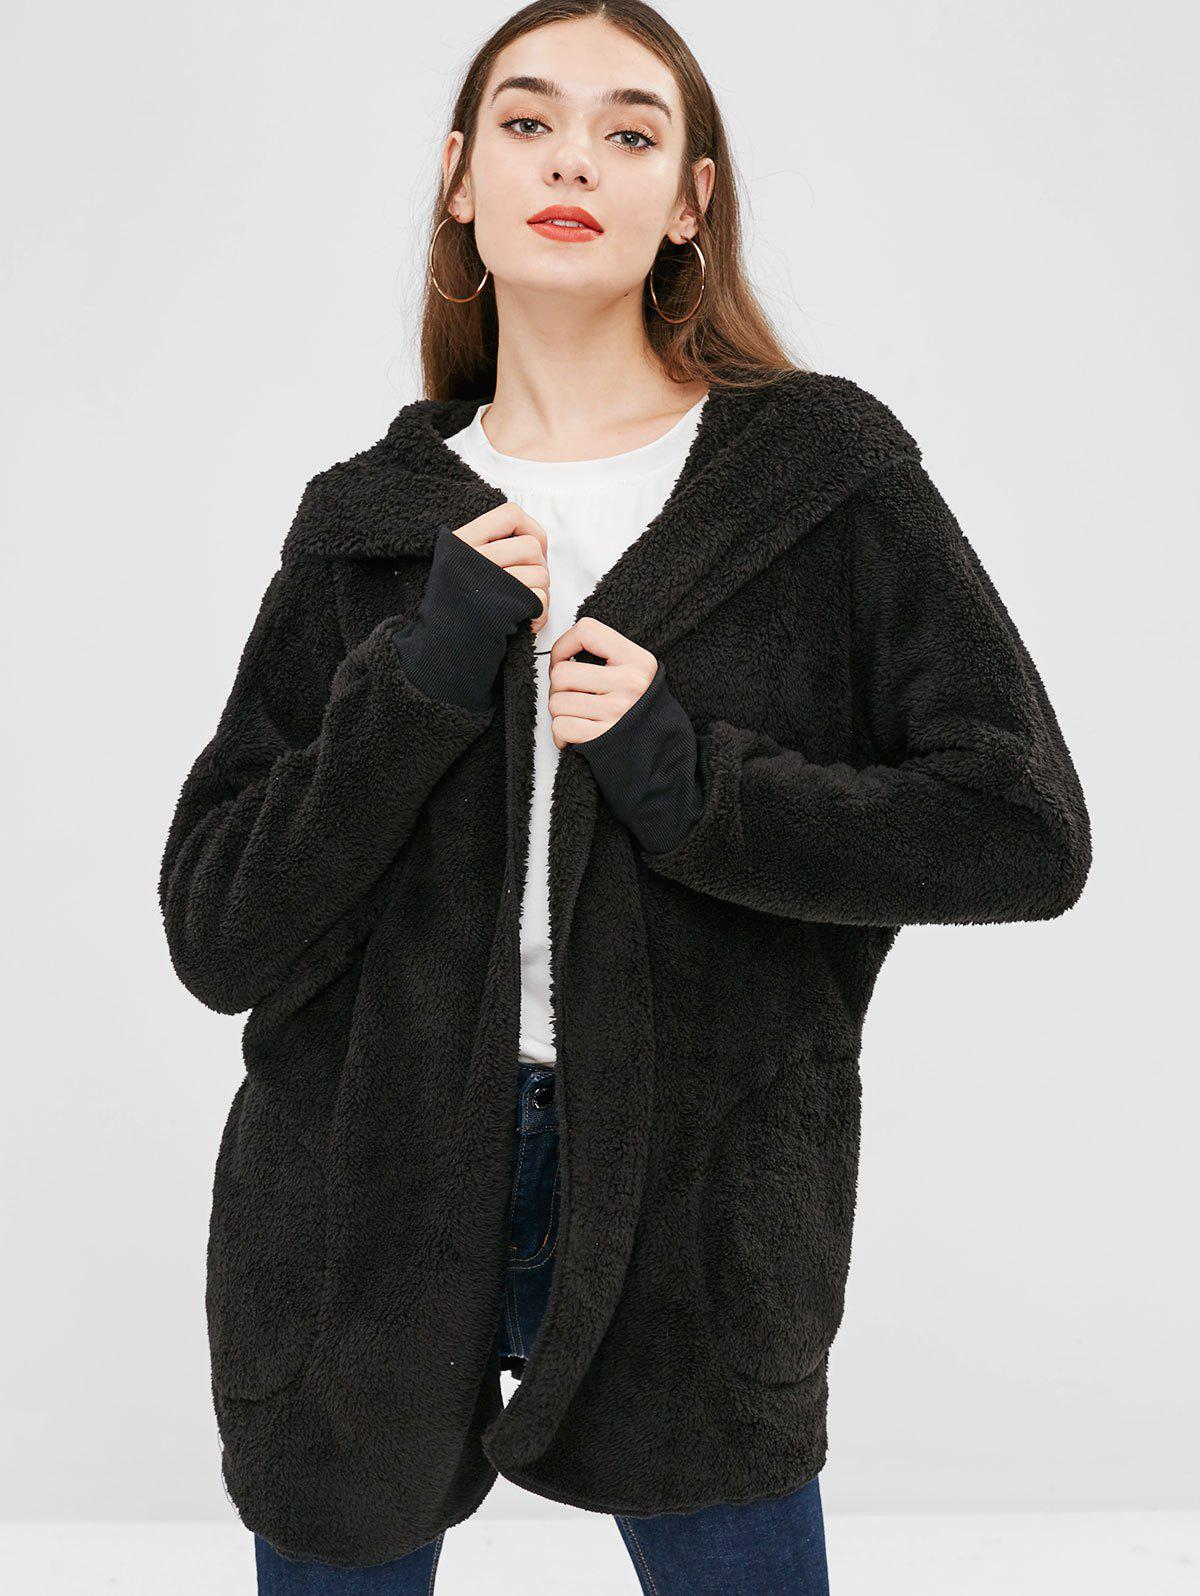 Solid Color Hooded Fluffy Teddy Coat